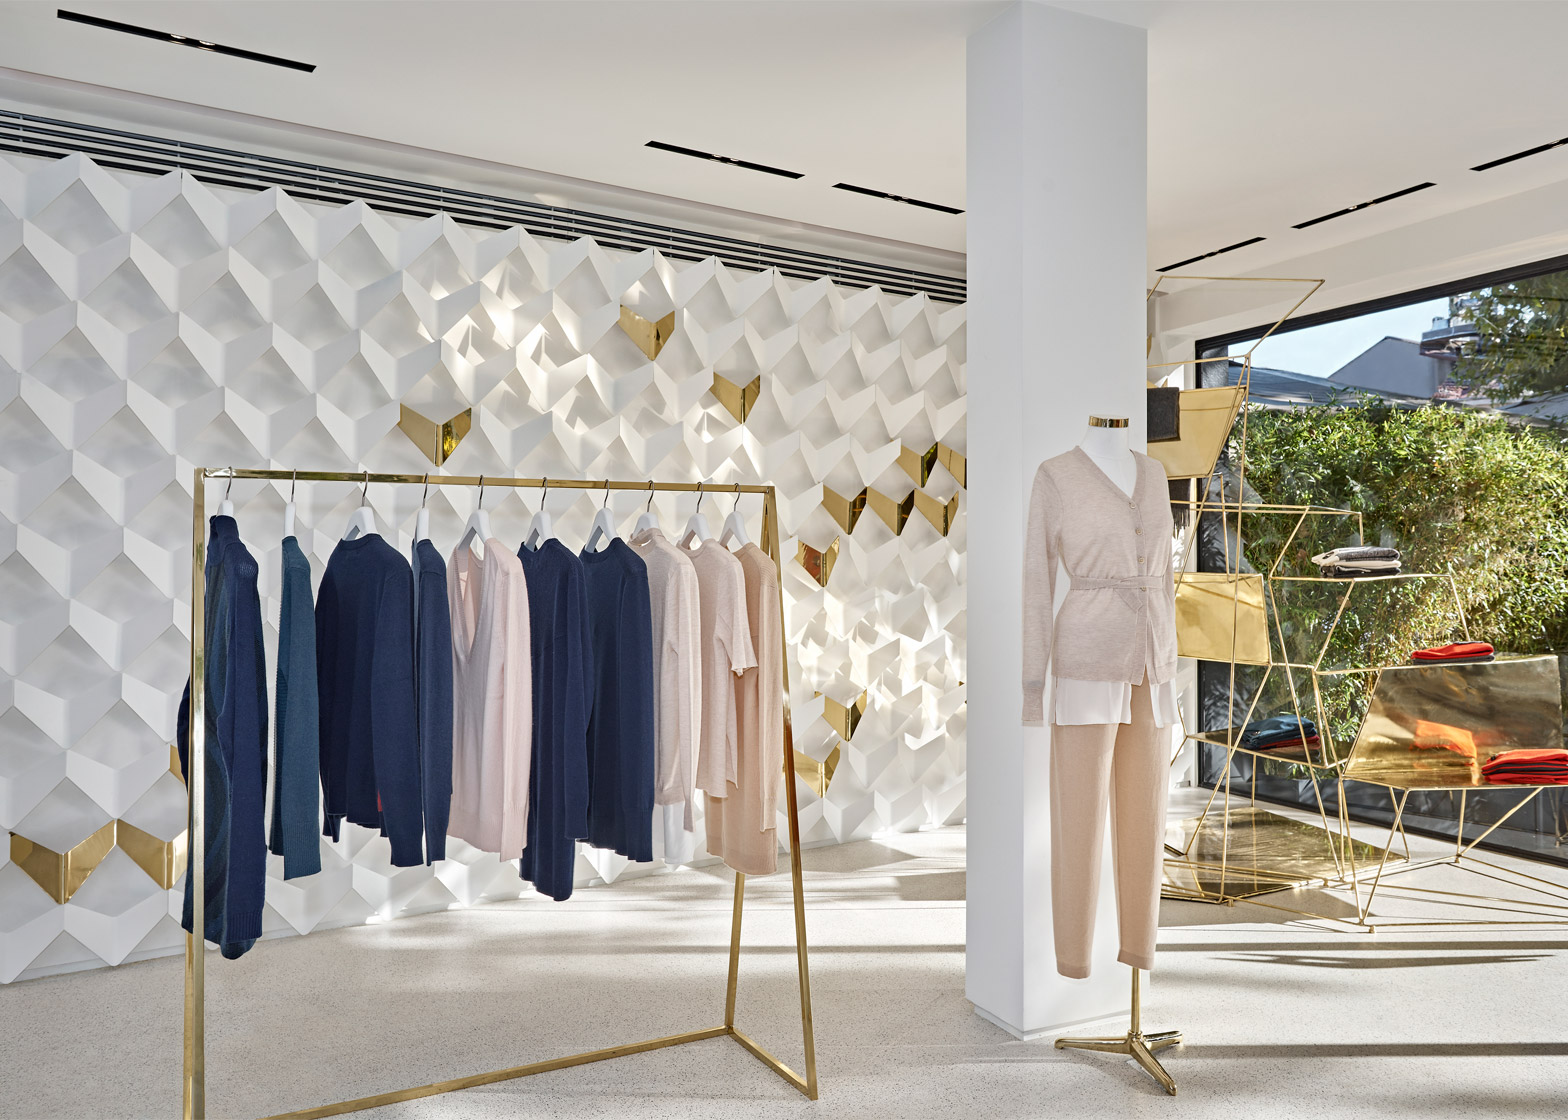 Urastudio creates minimalist clothing boutique in istanbul for Interior designs of boutique shops